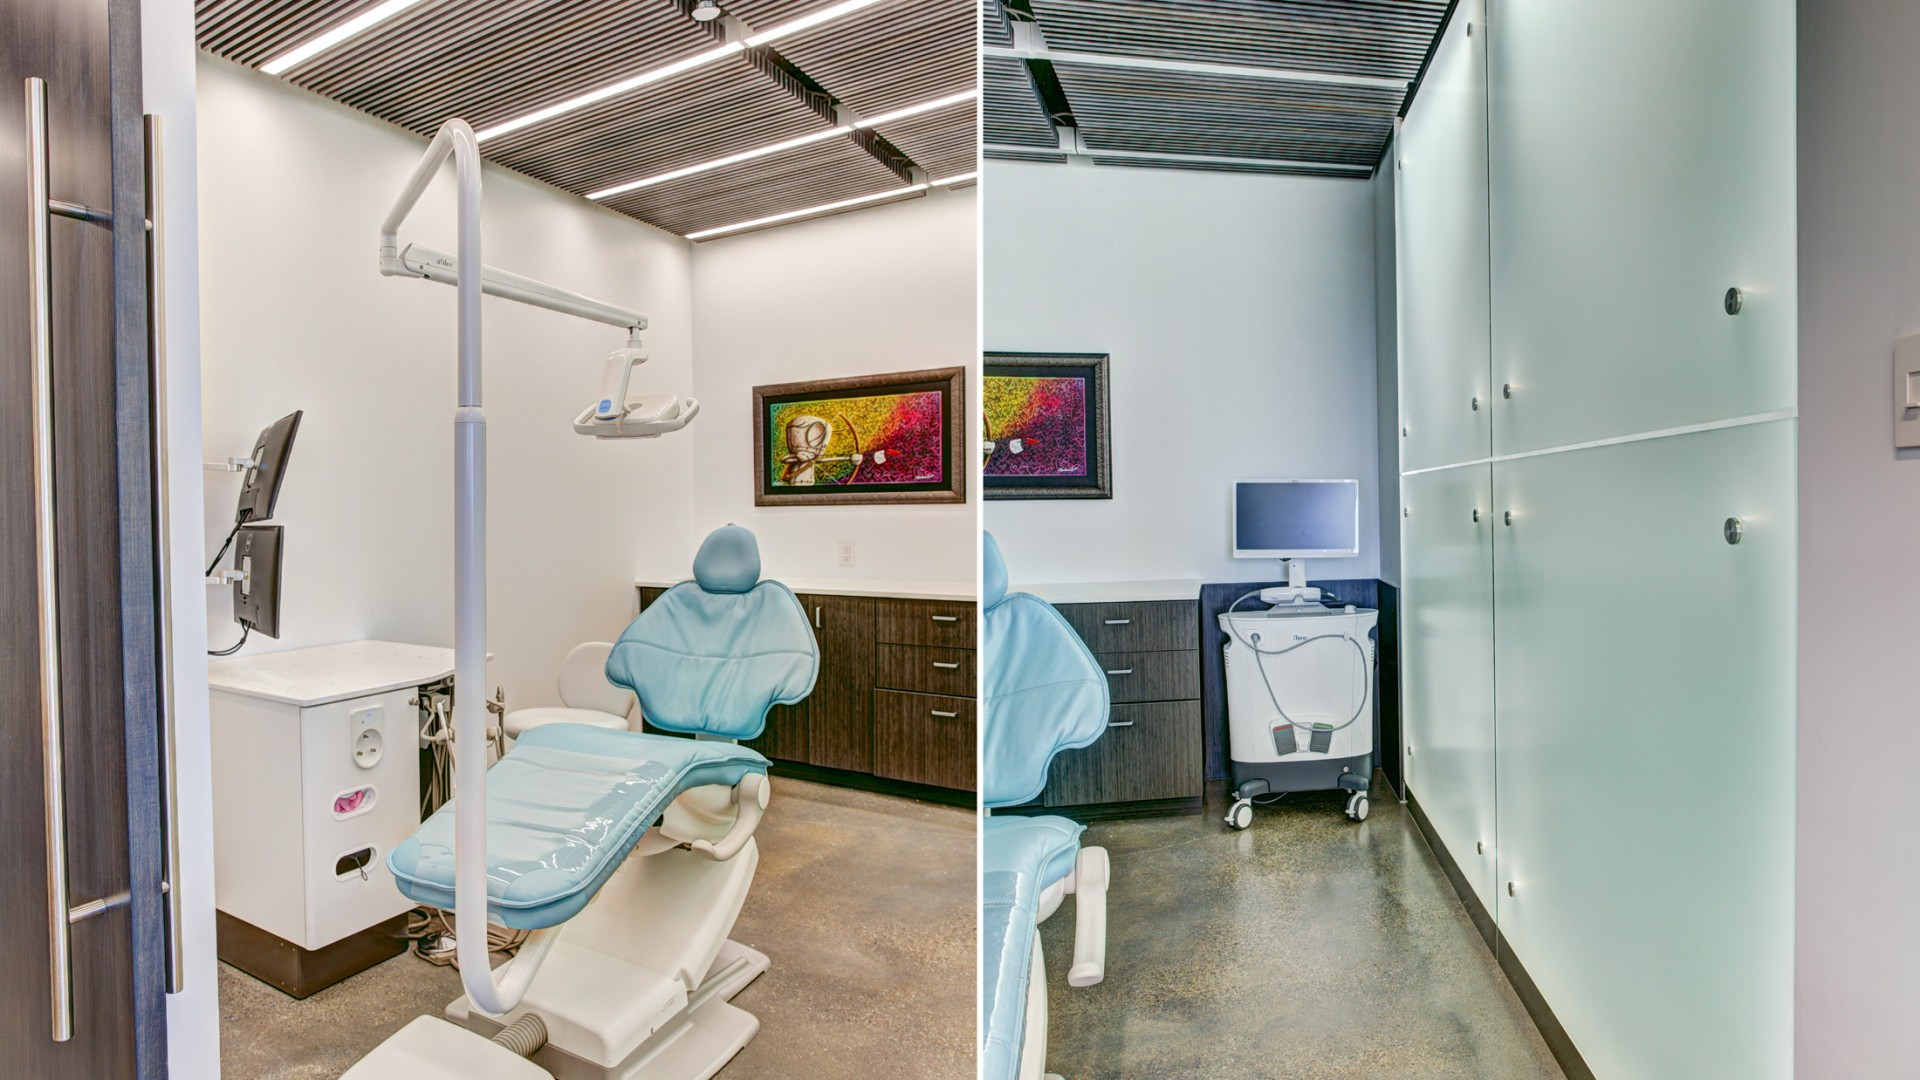 Private Treatment Room, Impressionless Scanner and Photolight Wall